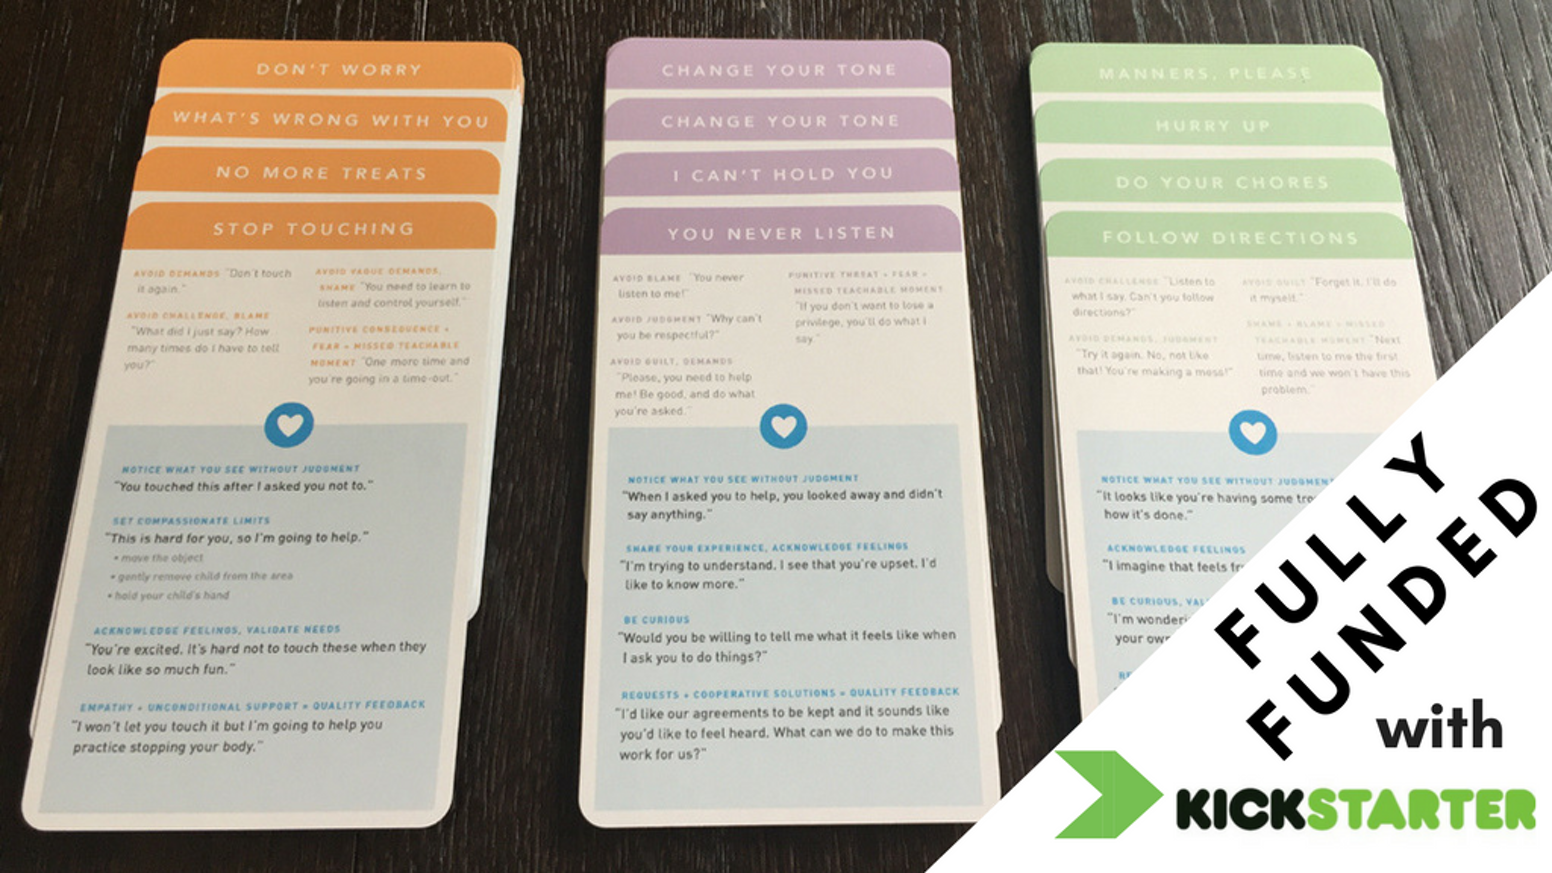 45 color-coded communication cards to help parents reduce stress, build connection, and model respectful communication for kids. NOW SHIPPING! Get yours today!